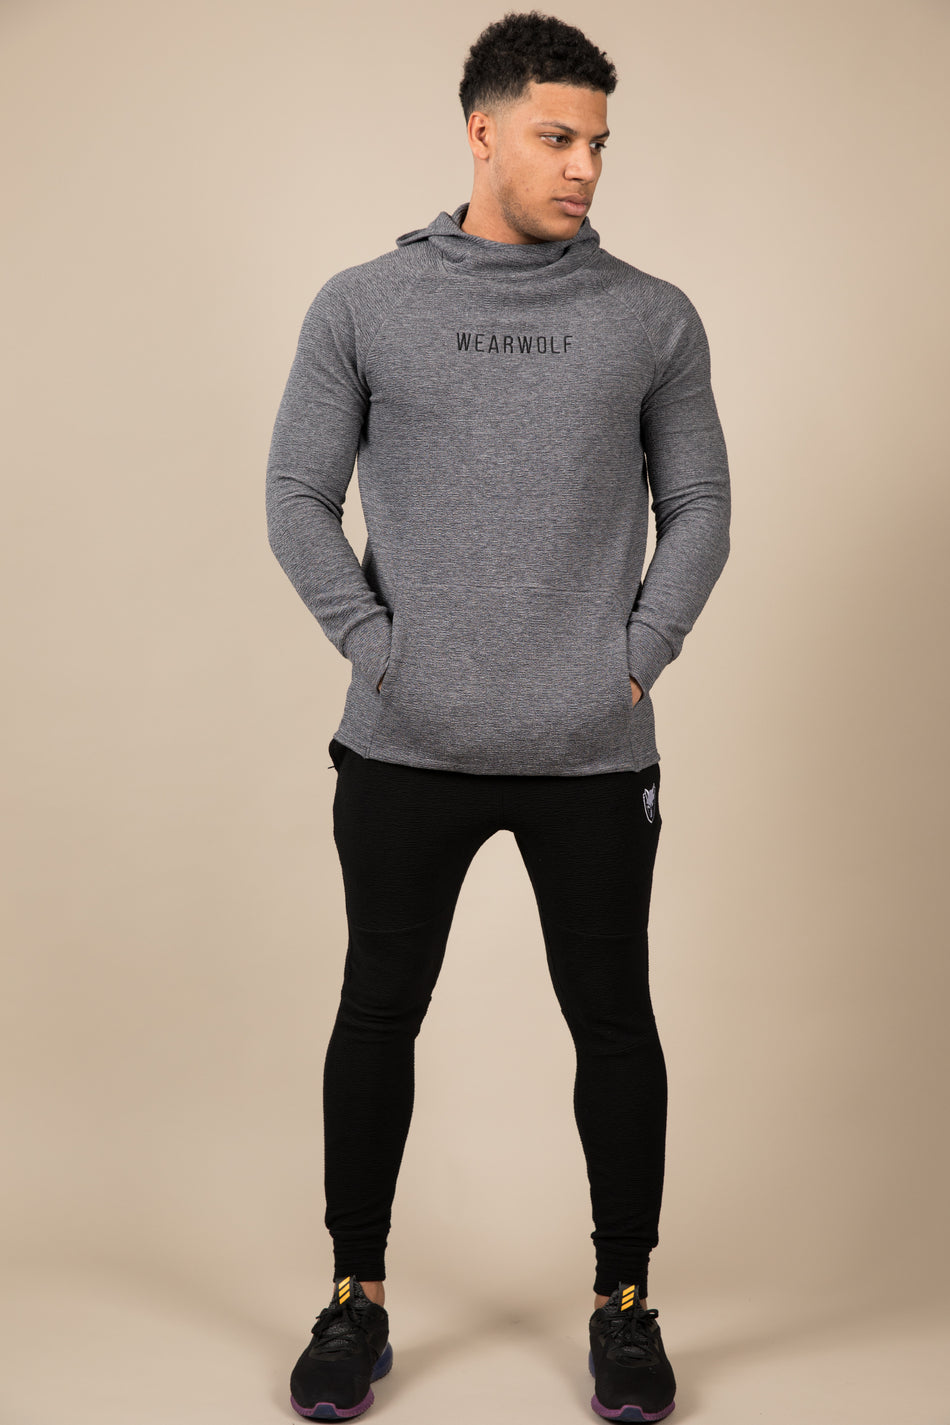 Winter Tracksuit Bottoms - Black - WearWolf Clothing UK